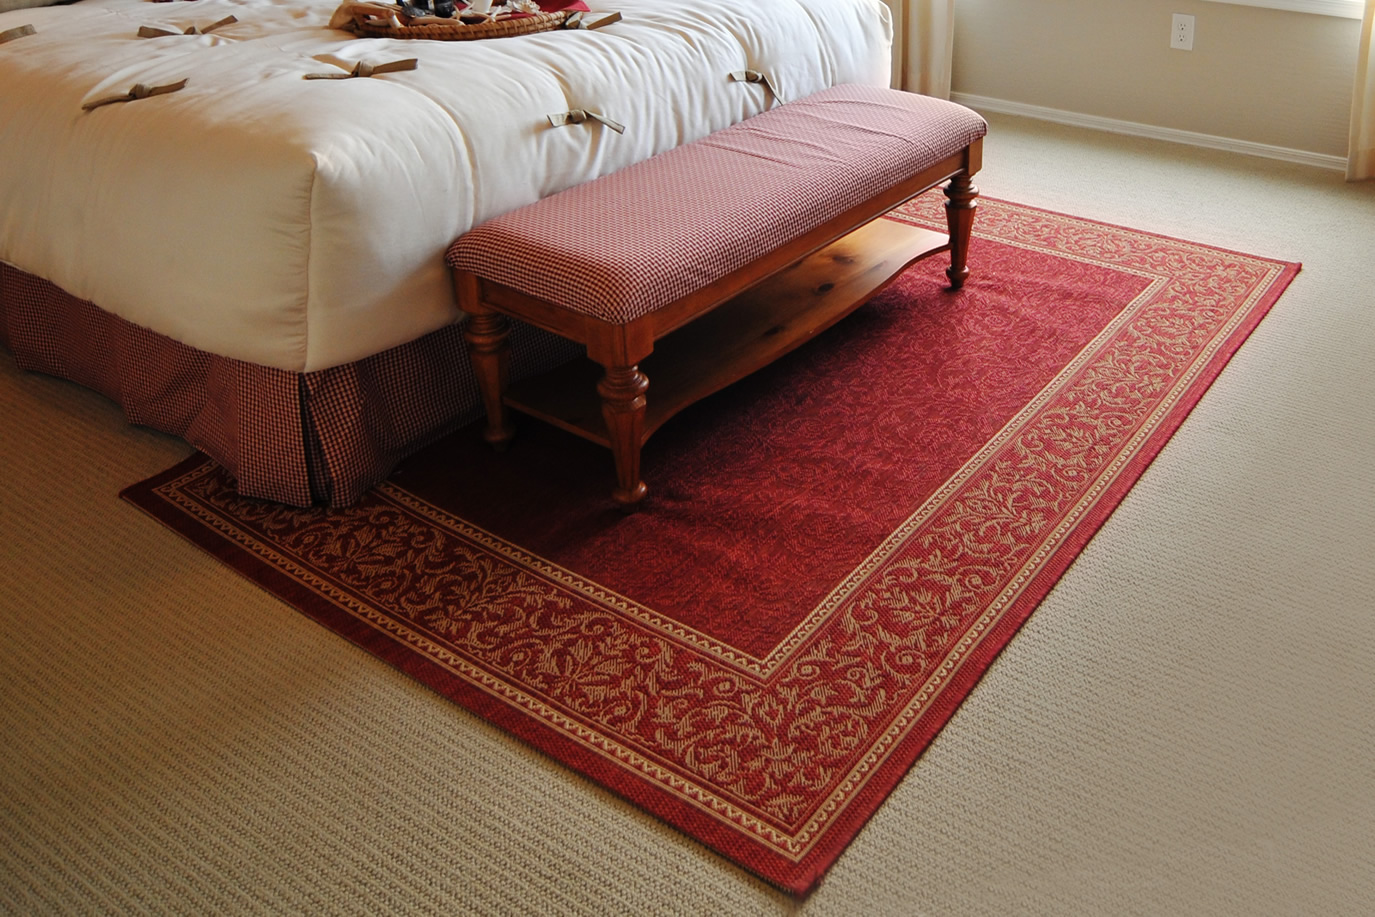 carpet-rm-red-accents